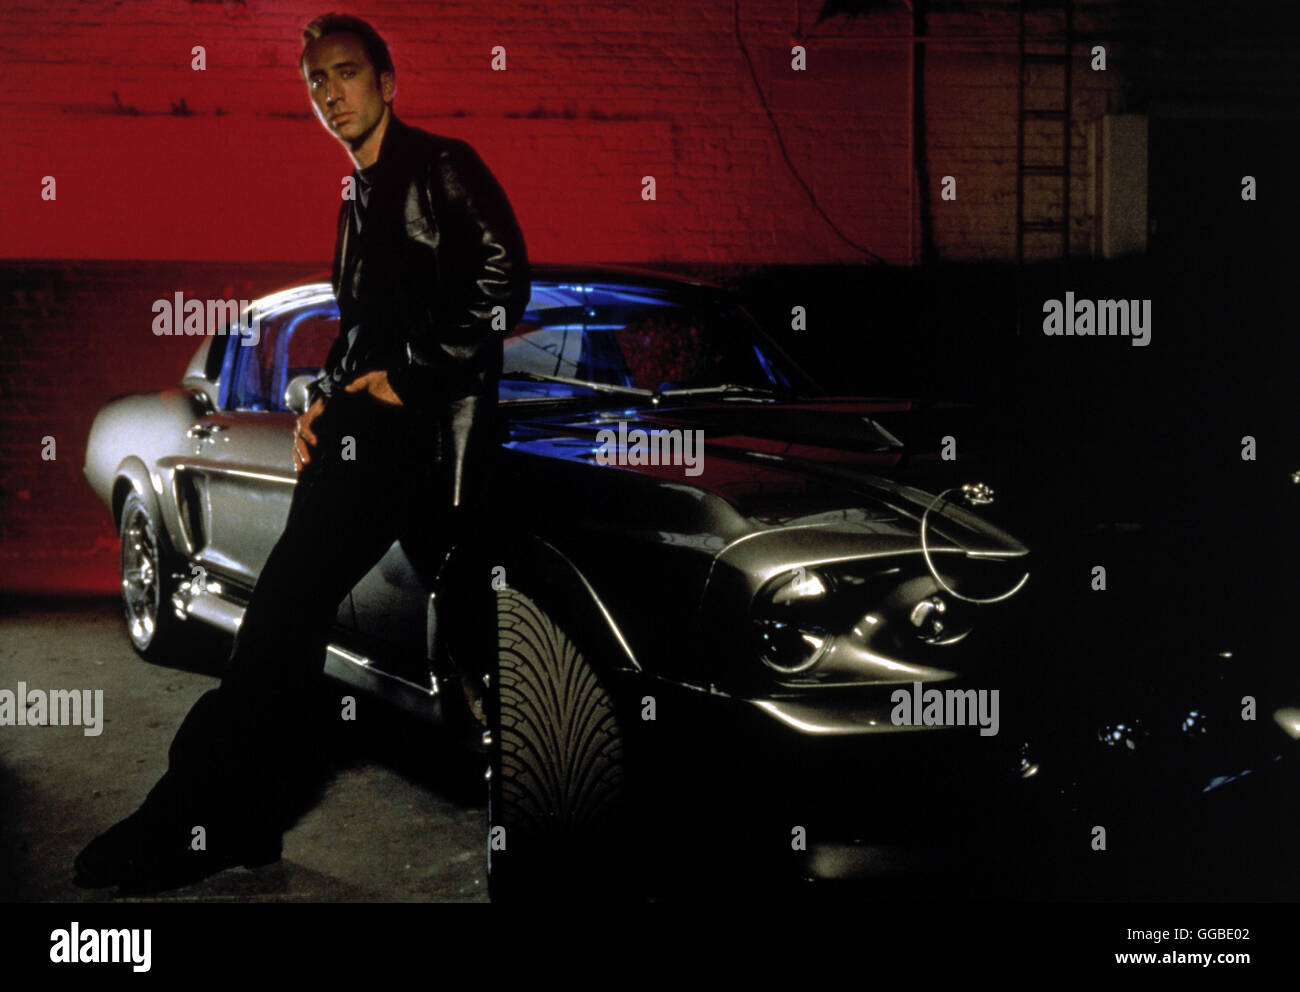 NUR NOCH 60 SEKUNDEN Gone in Sixty Seconds USA 2000 Dominic Sena Randall 'Memphis' Raines (NICOLAS CAGE) and hisStock Photo